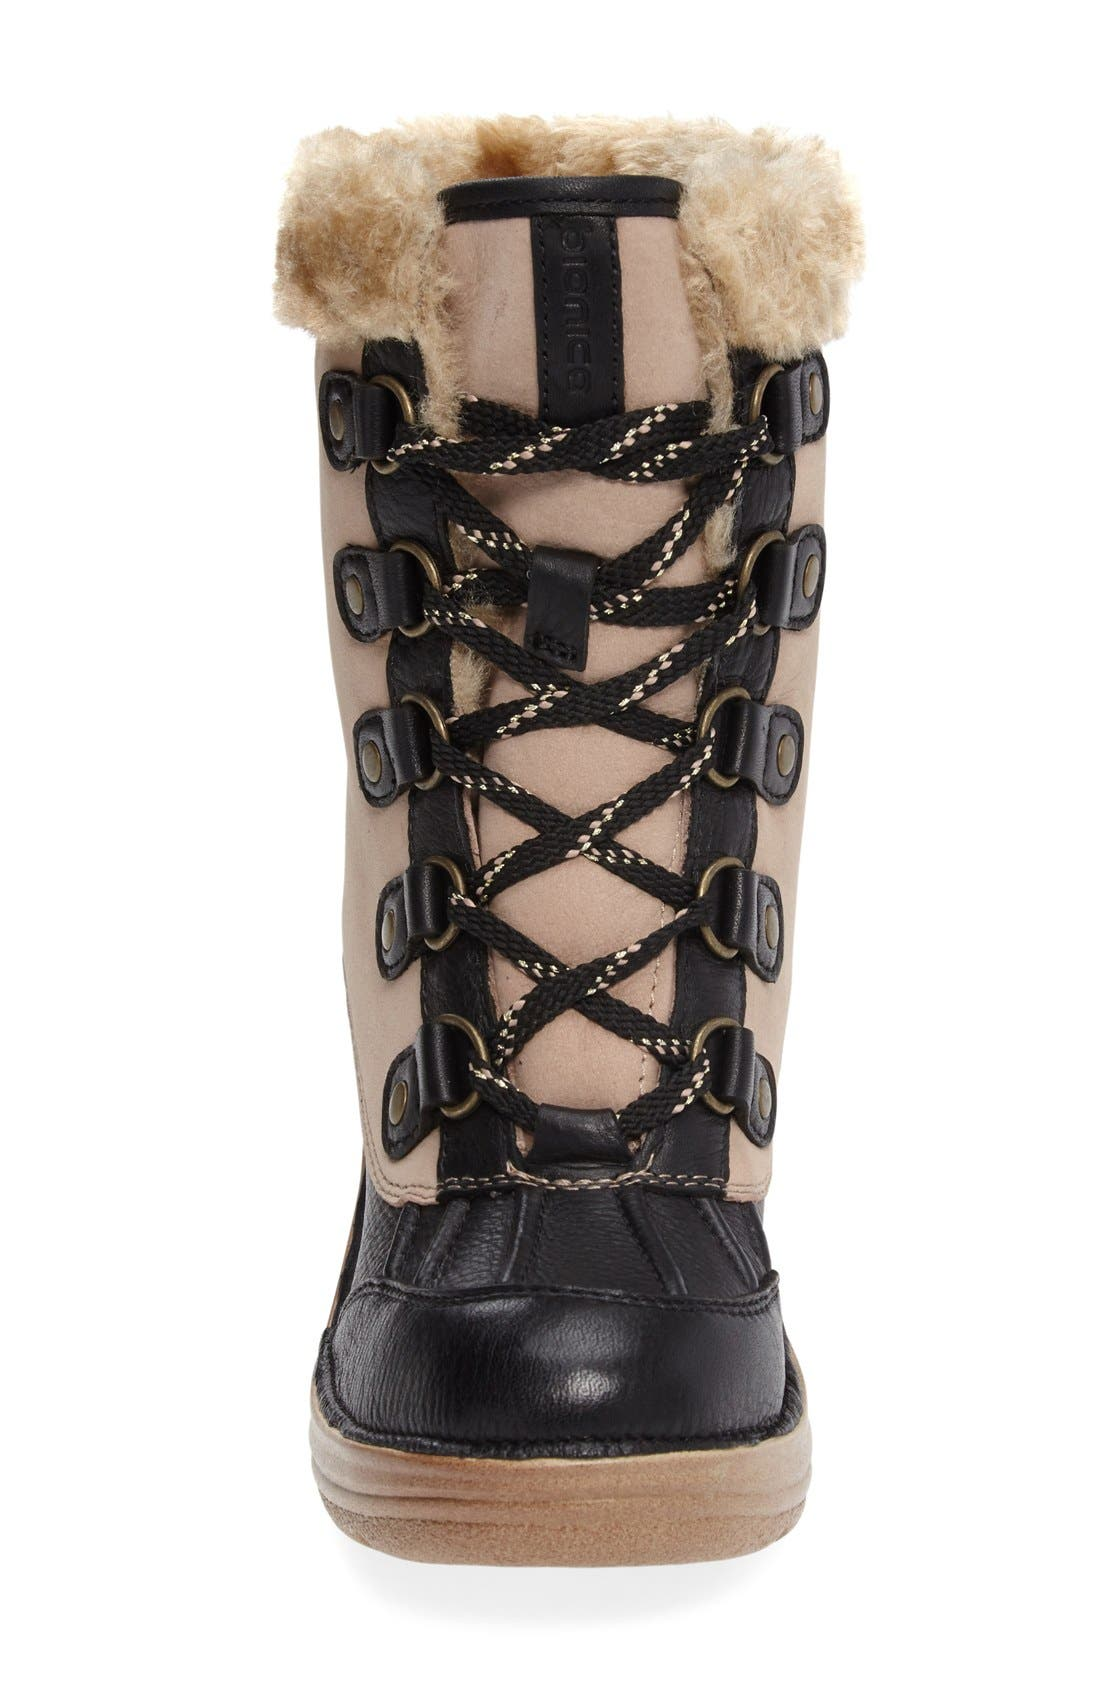 Rosemound Waterproof Boot,                             Alternate thumbnail 2, color,                             Cream/ Black Leather